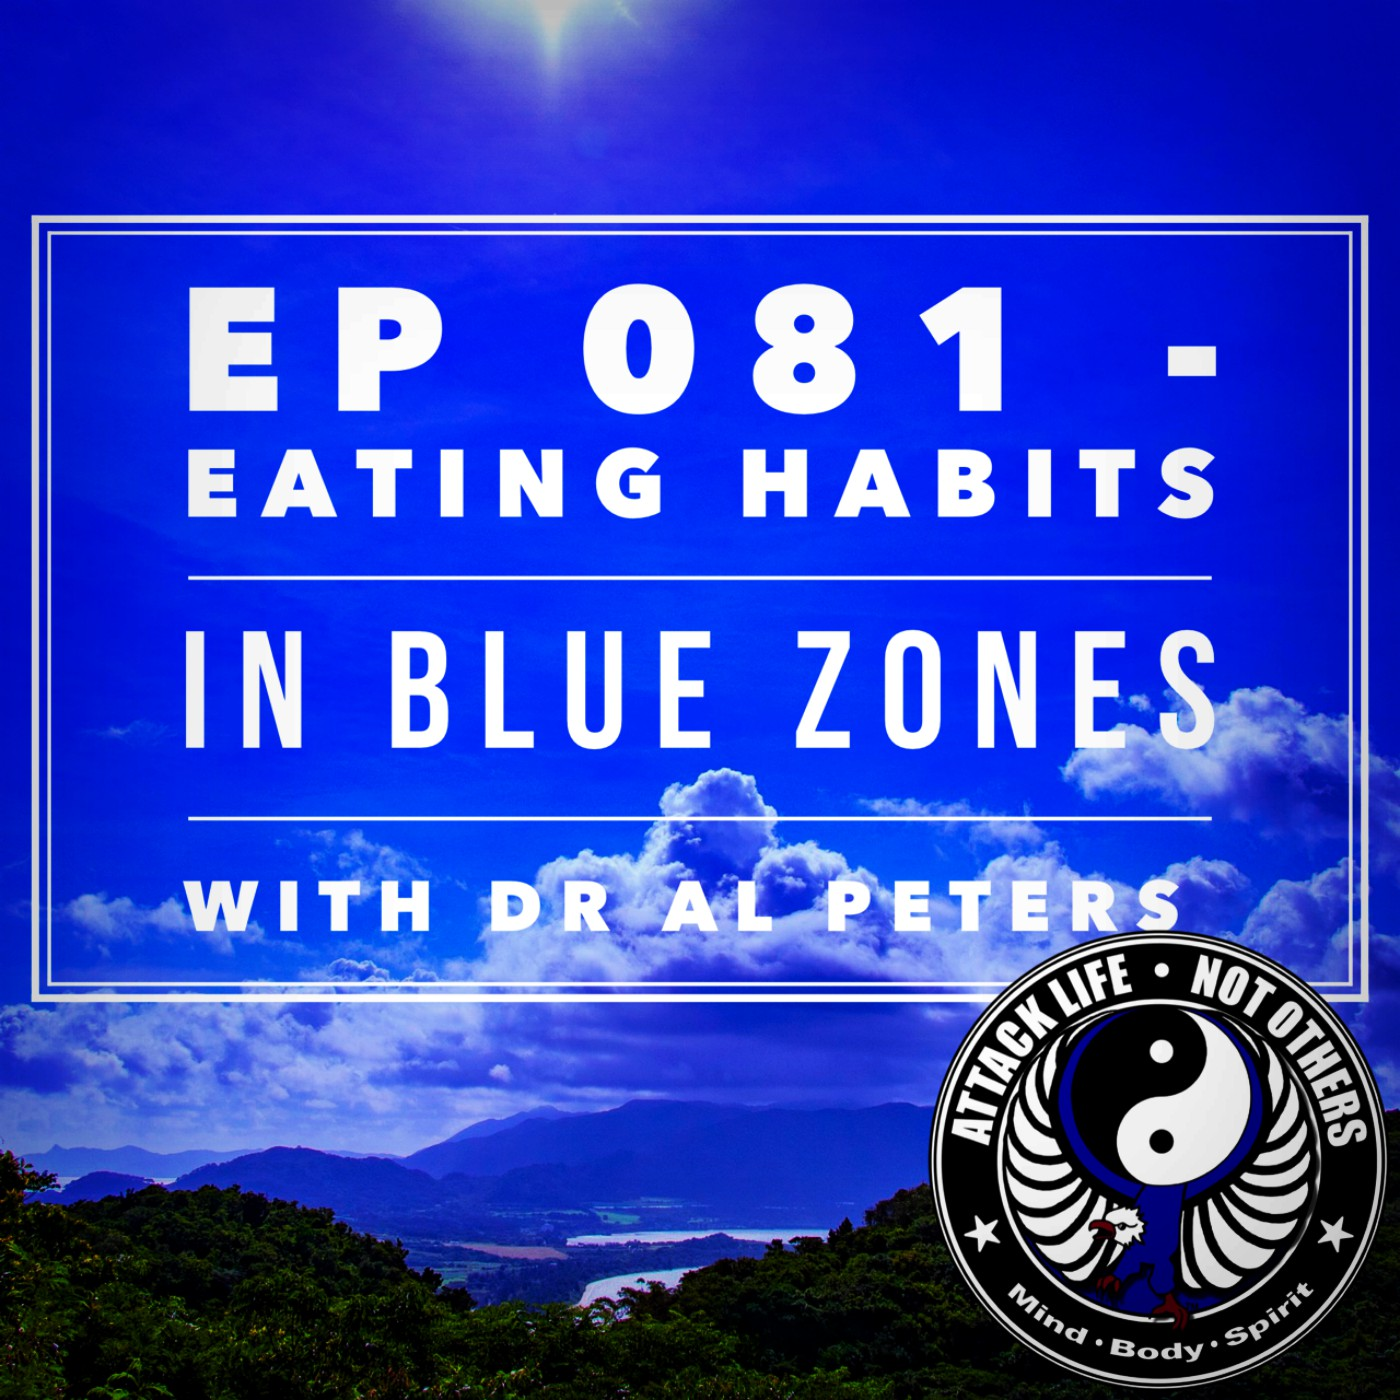 Artwork for Ep 081 - Eating Habits in Blue Zones with Dr Al Peters